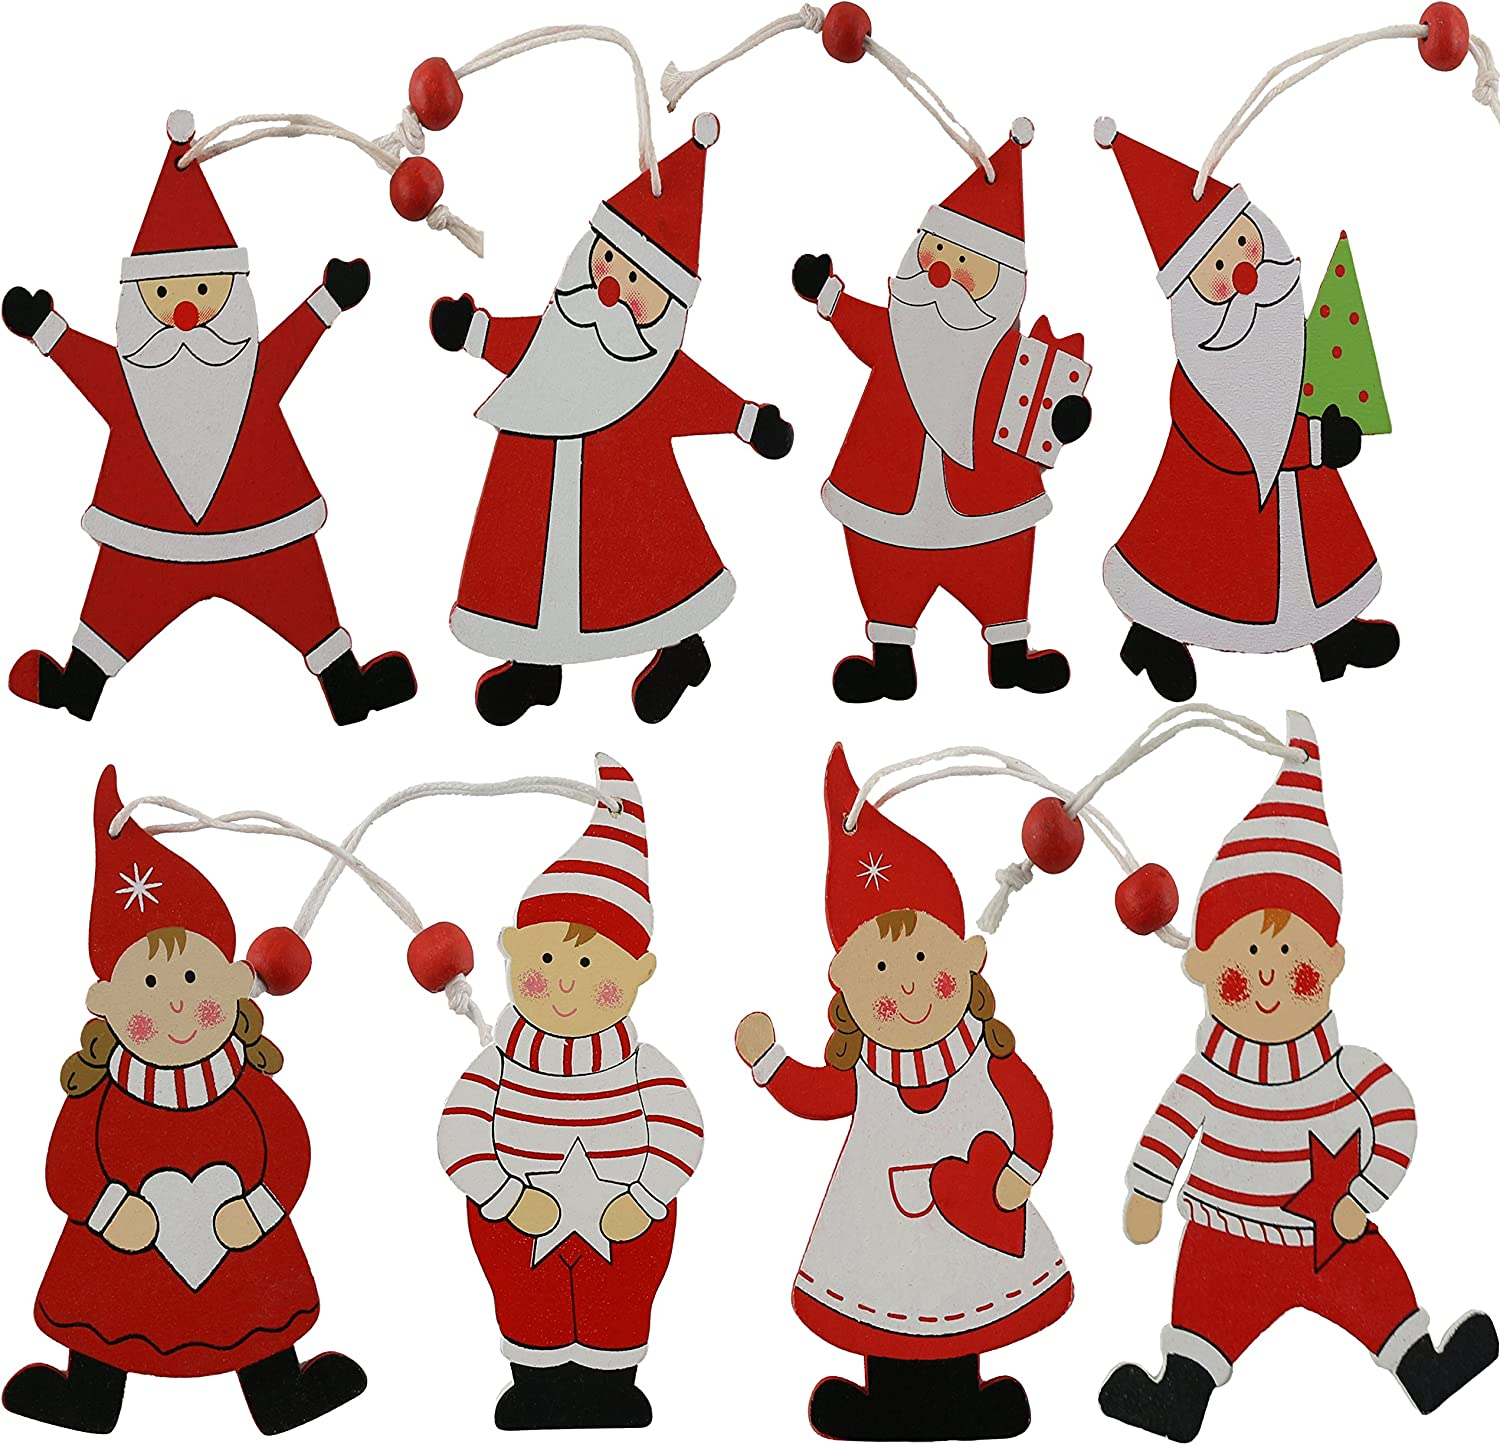 Bstaofy Wewill 4-Inch Wooden Christmas Ornaments Santa ans Elf Tree Hanging Decoration 8PCS